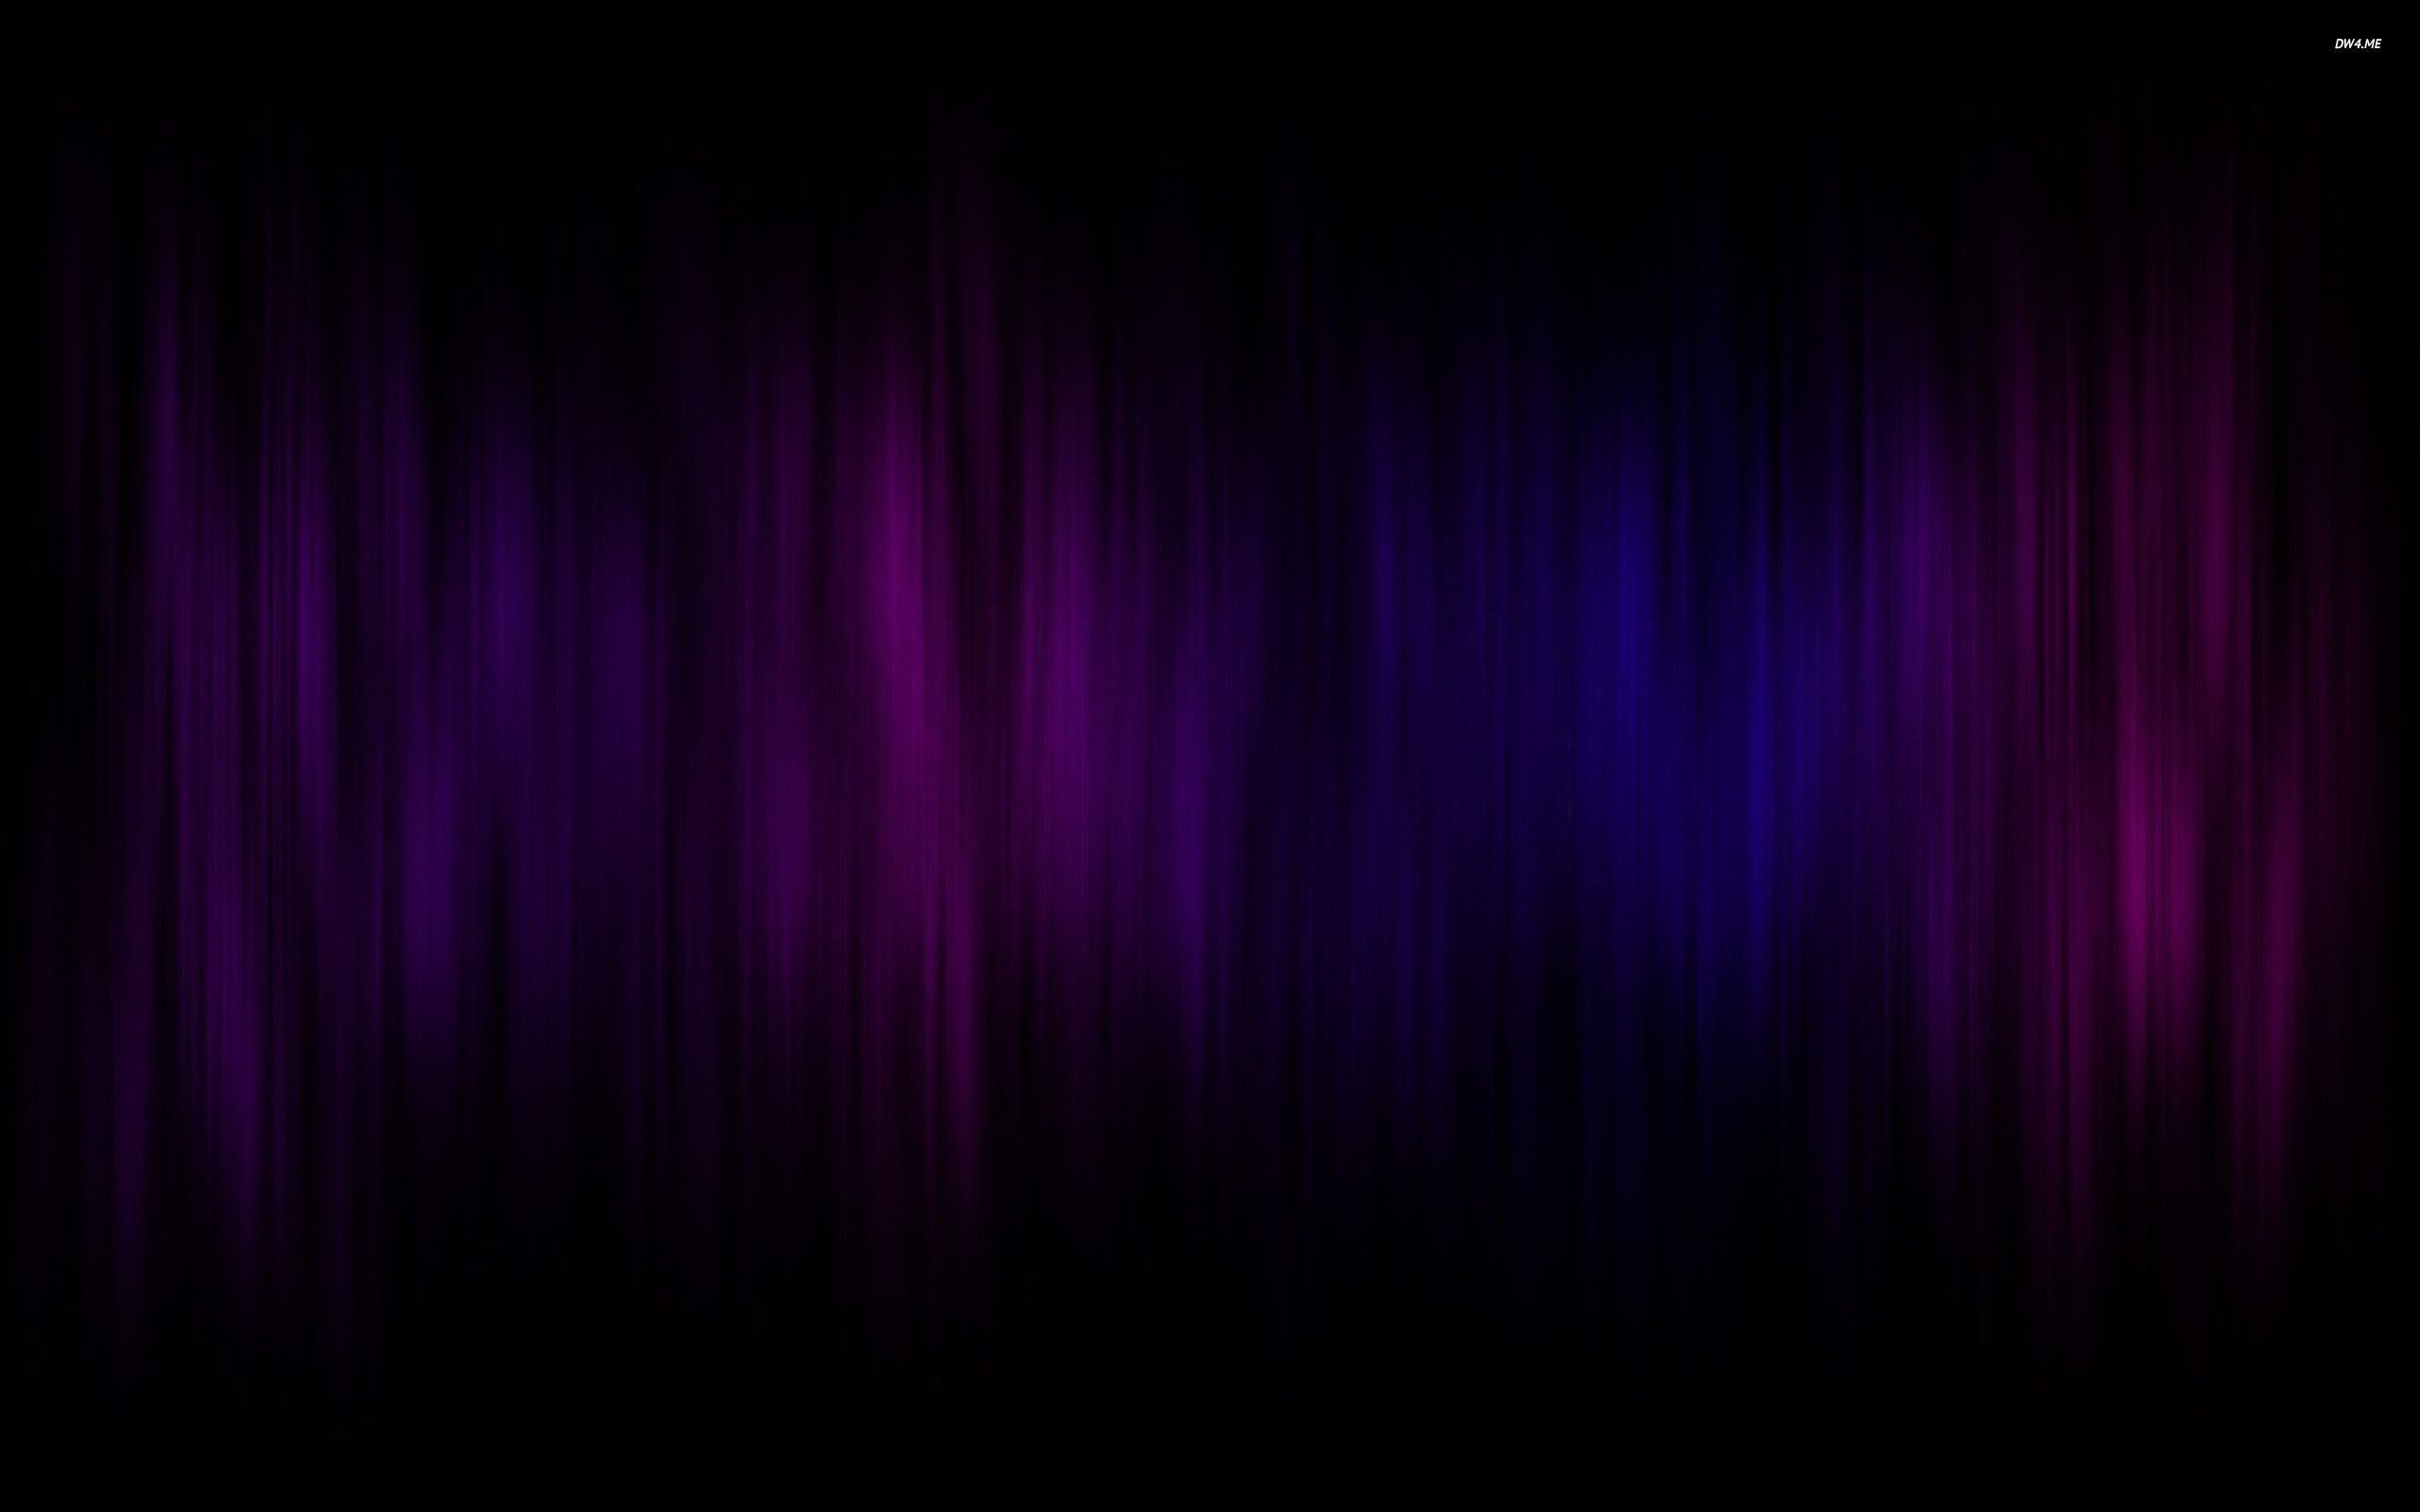 10 Top Purple And Black Wallpaper Full Hd 1920 1080 For Pc Desktop Black And Purple Wallpaper Purple Wallpaper Purple Wallpaper Hd